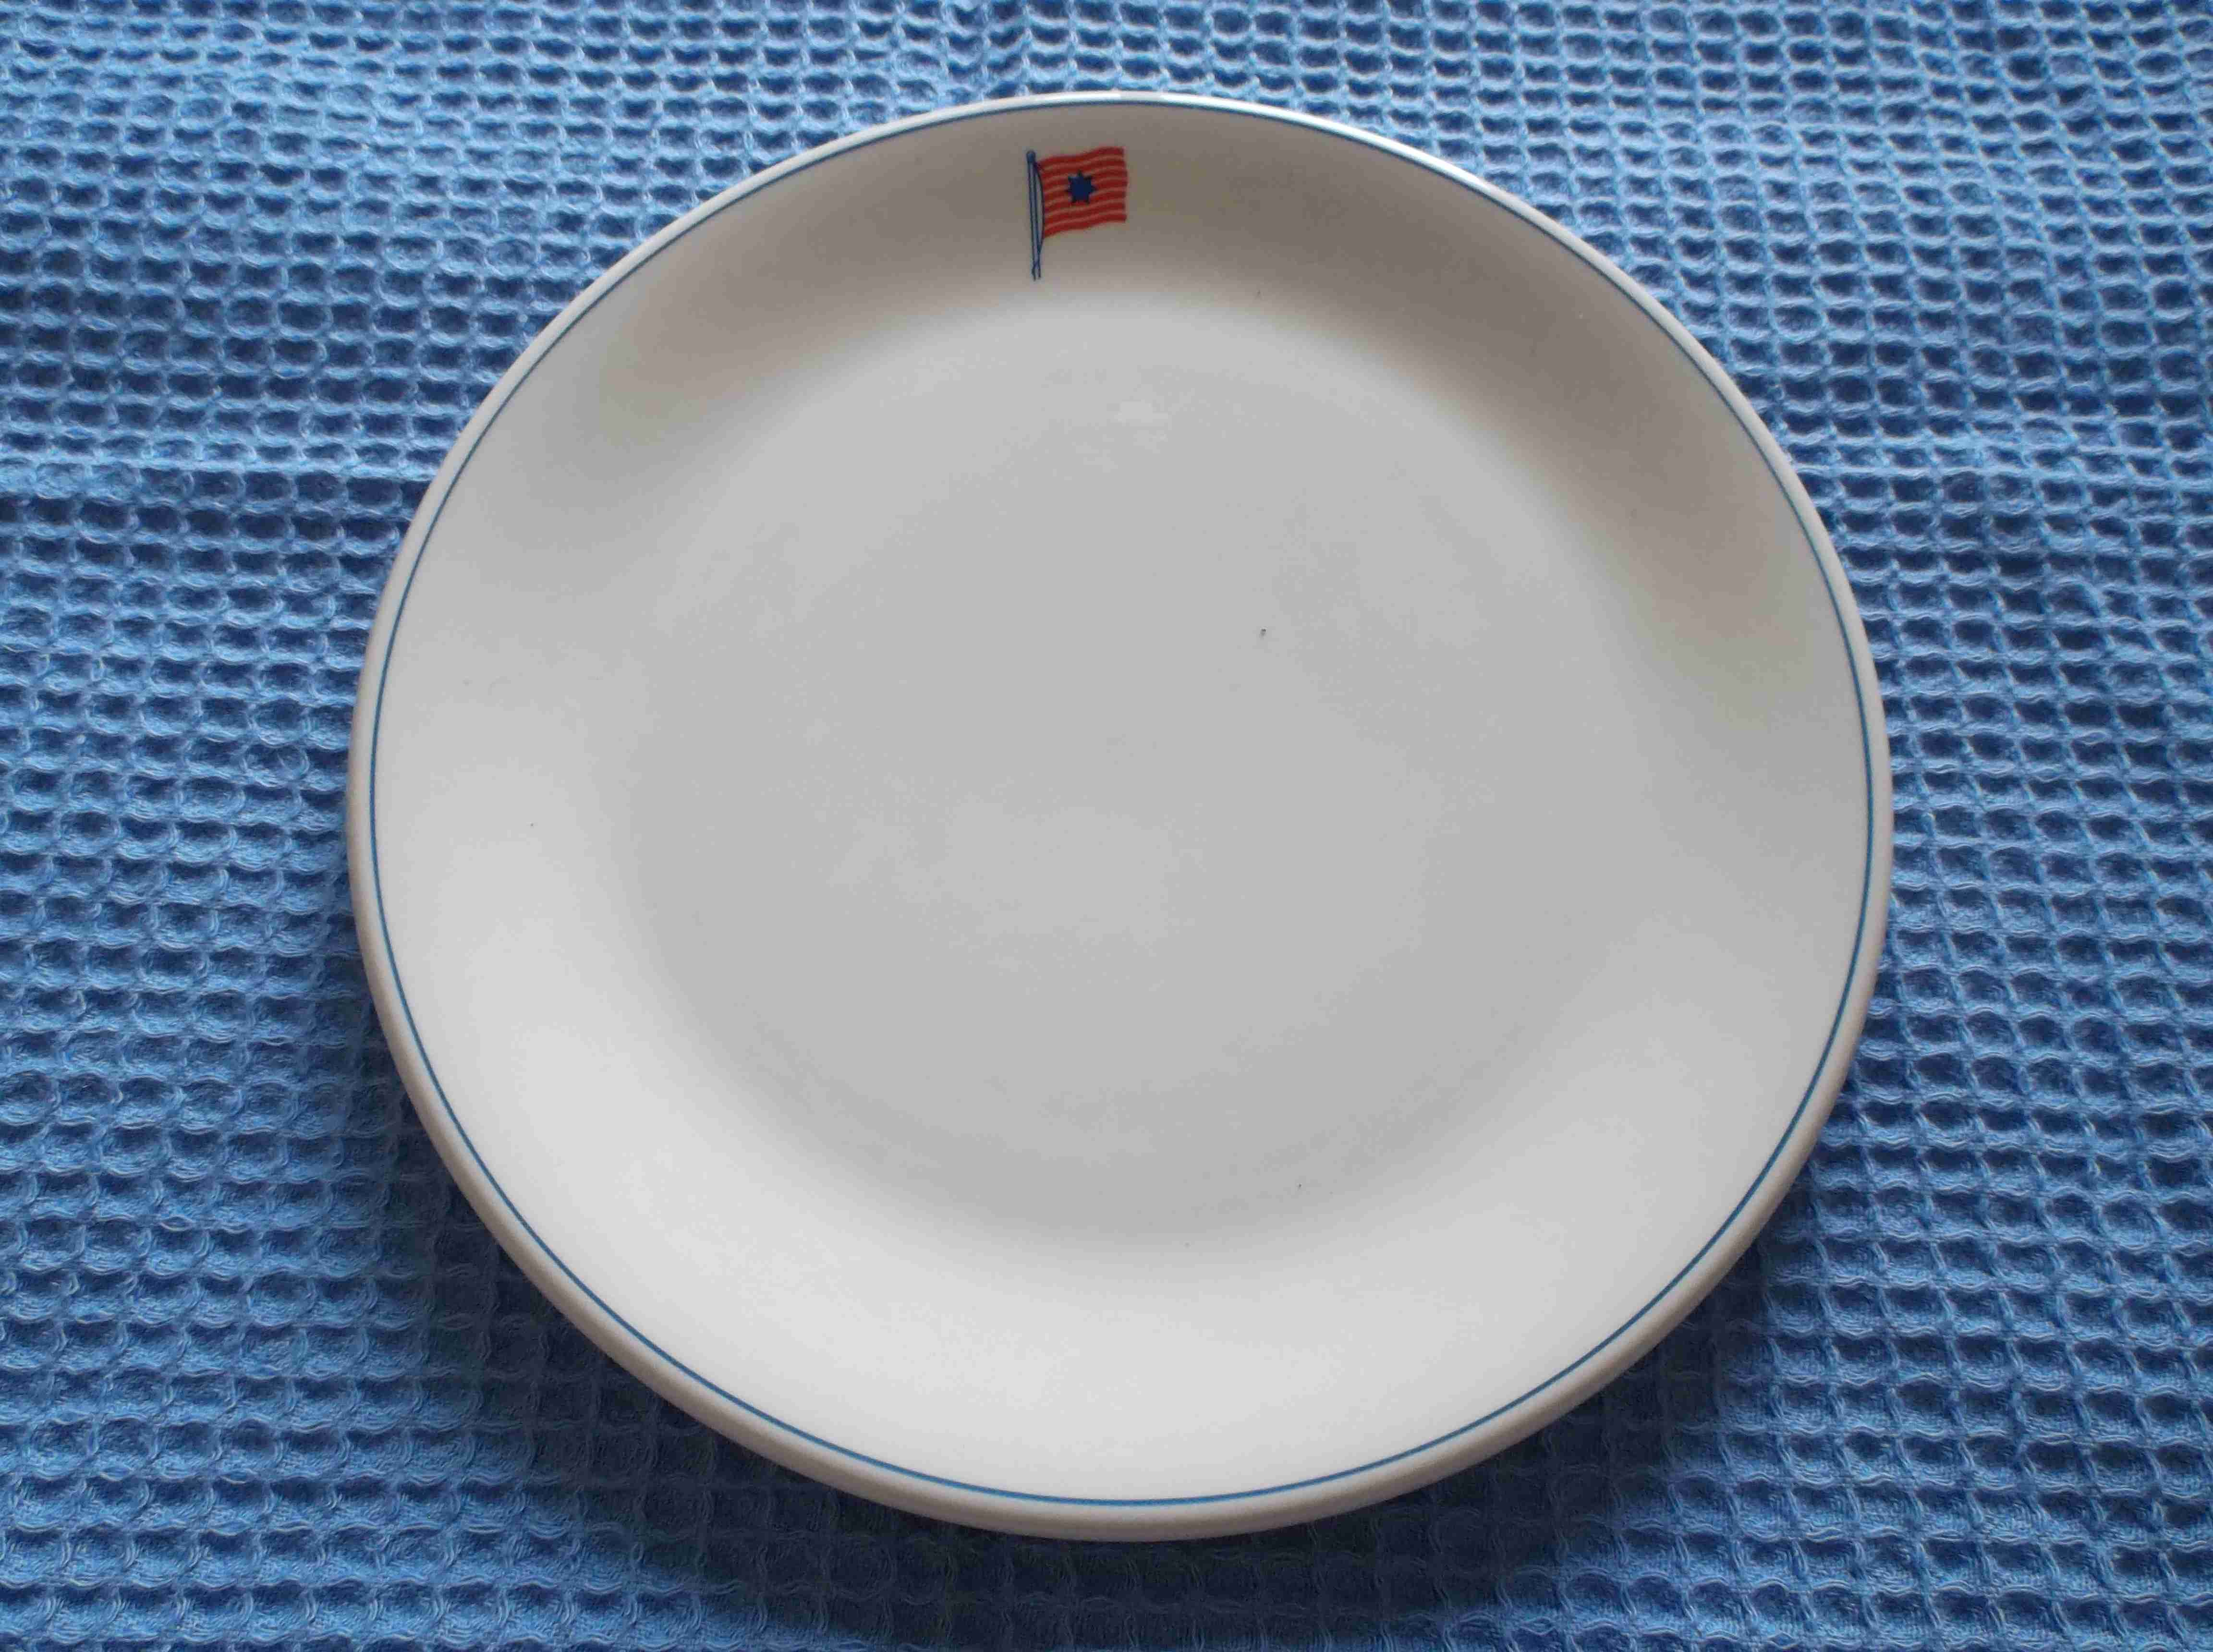 DINING PLATE FROM THE BRITISH TANKER COMPANY HUNTING AND SON AND THE VESSEL THAMESFIELD